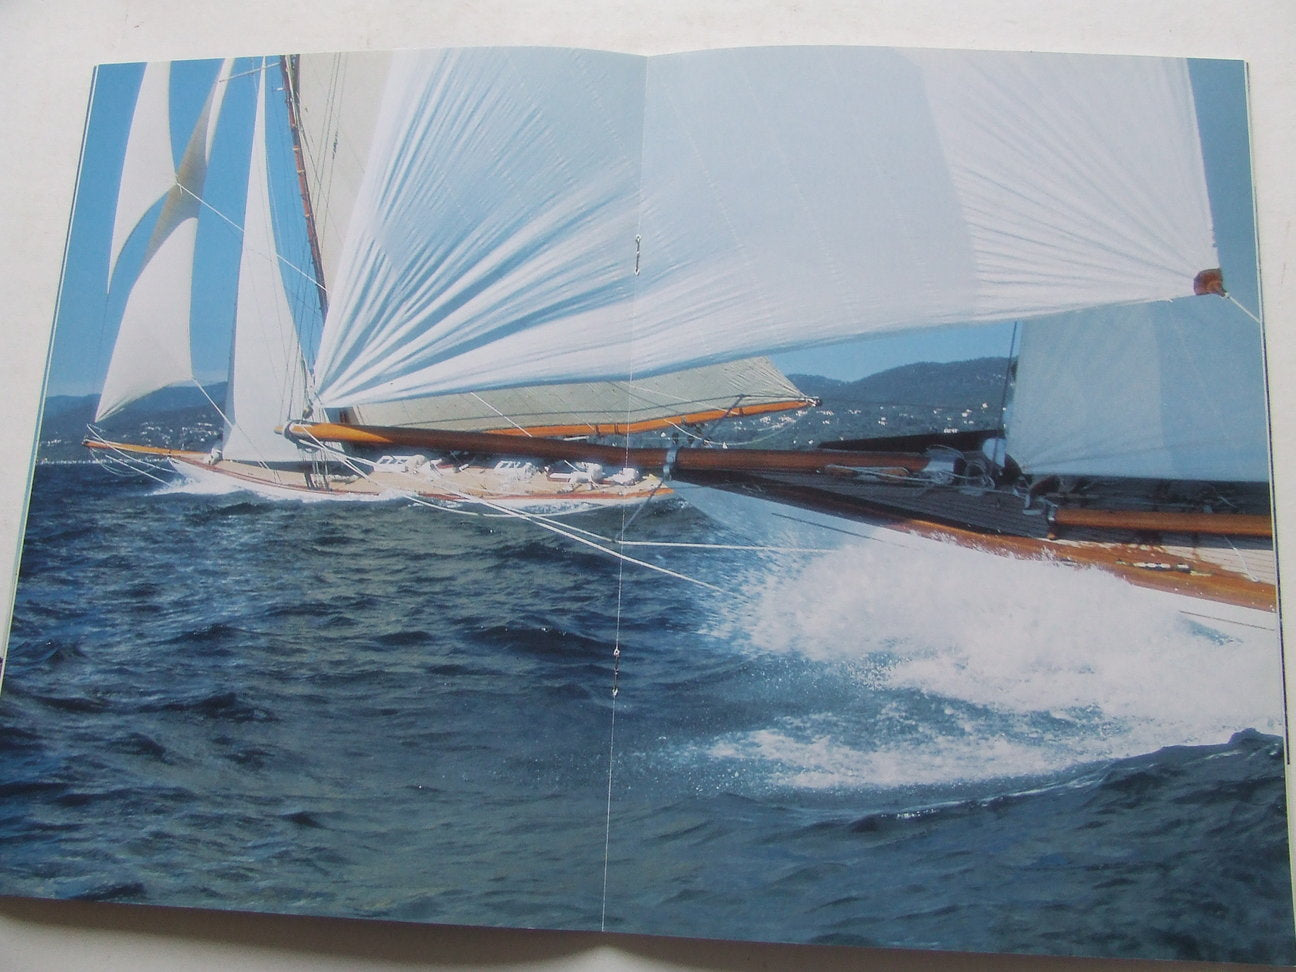 The Fife Regatta 2003